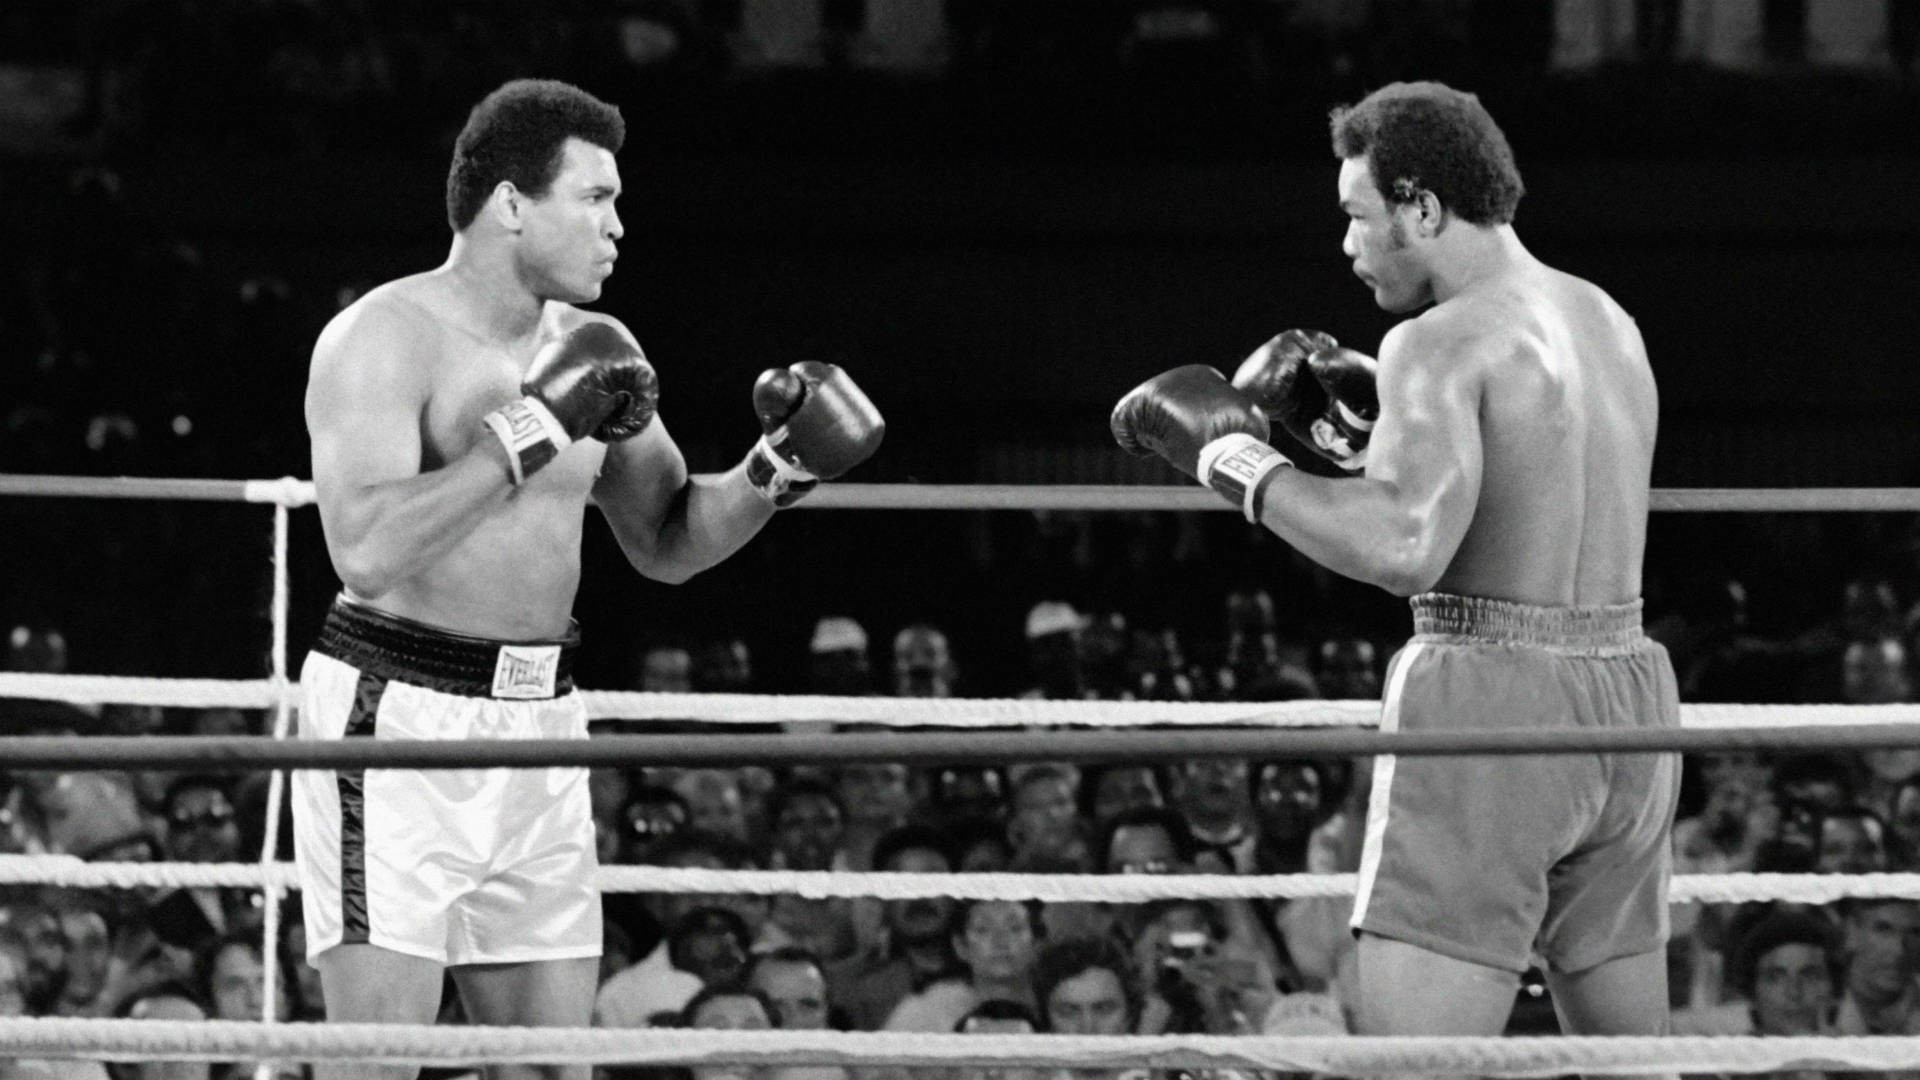 1920x1080 The sports world reacts to the death of Muhammad Ali | Other Sports |  Sporting News